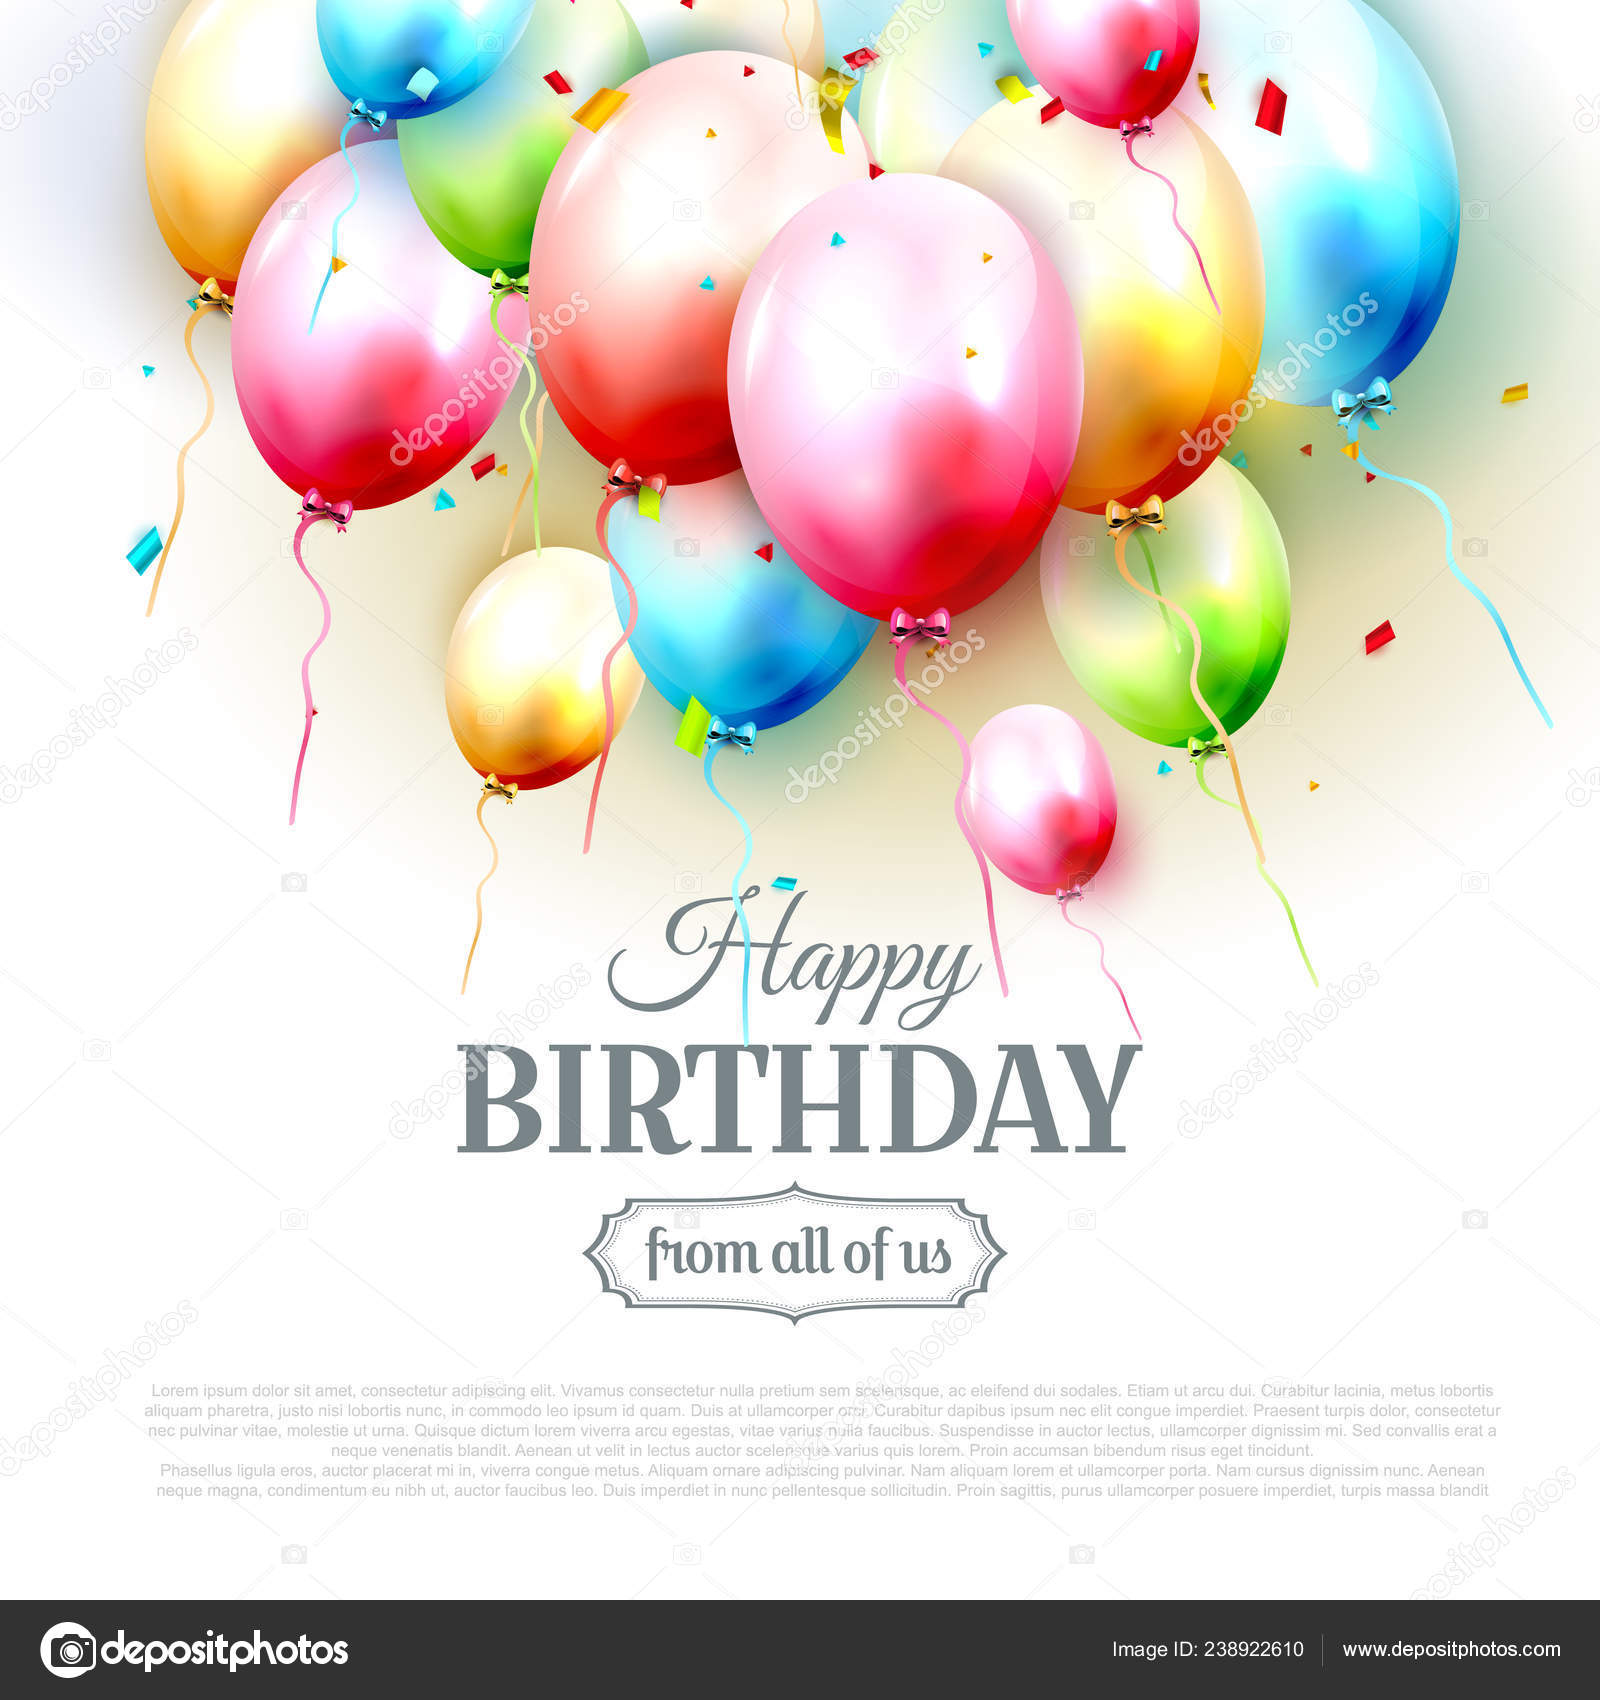 Happy Birthday Greeting Card Colorful Birthday Balloons White Background Vector Image By C Kaktus2536 Vector Stock 238922610